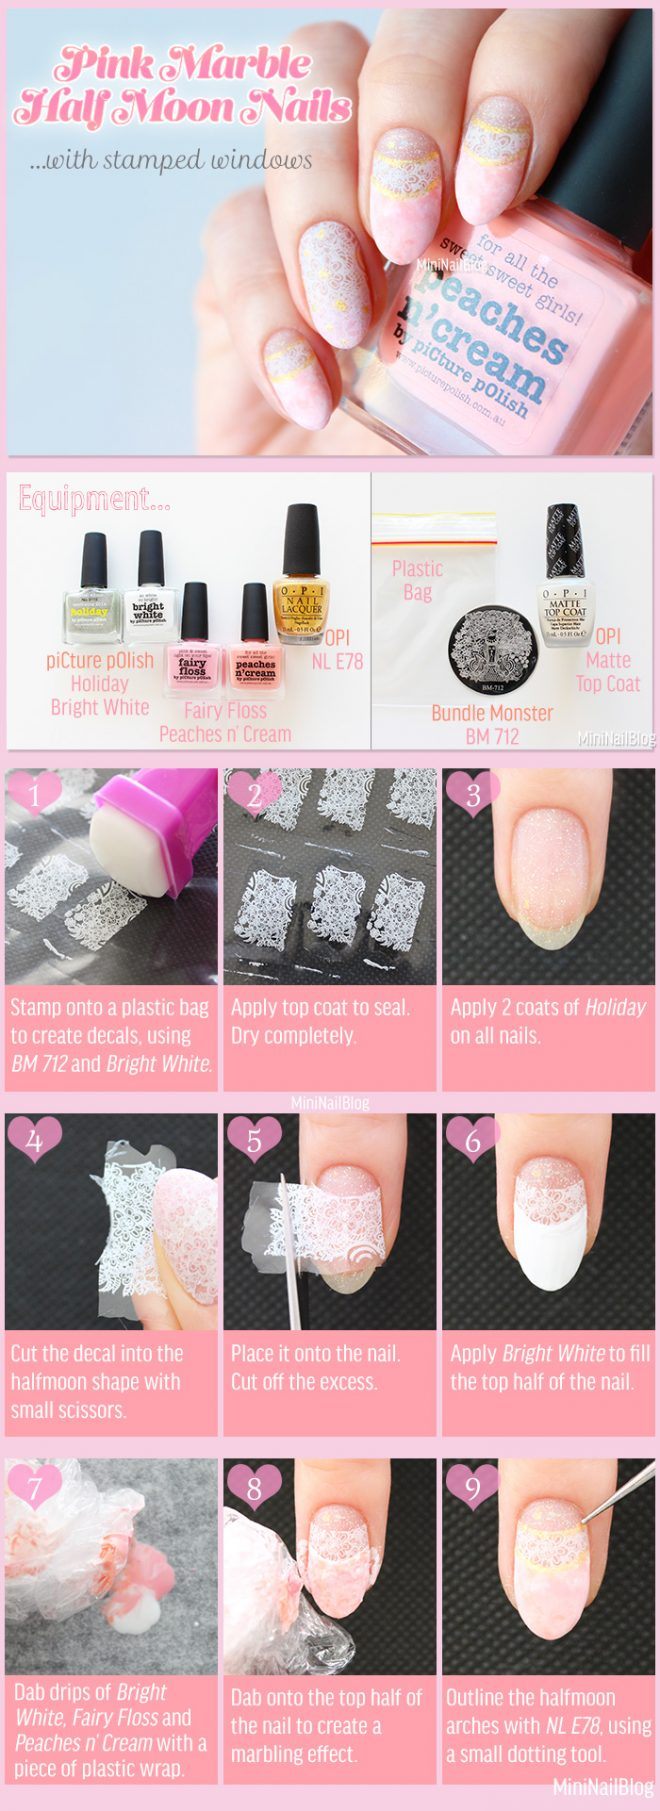 Pink-Marble-Half-Moon-Nails-Tutorial